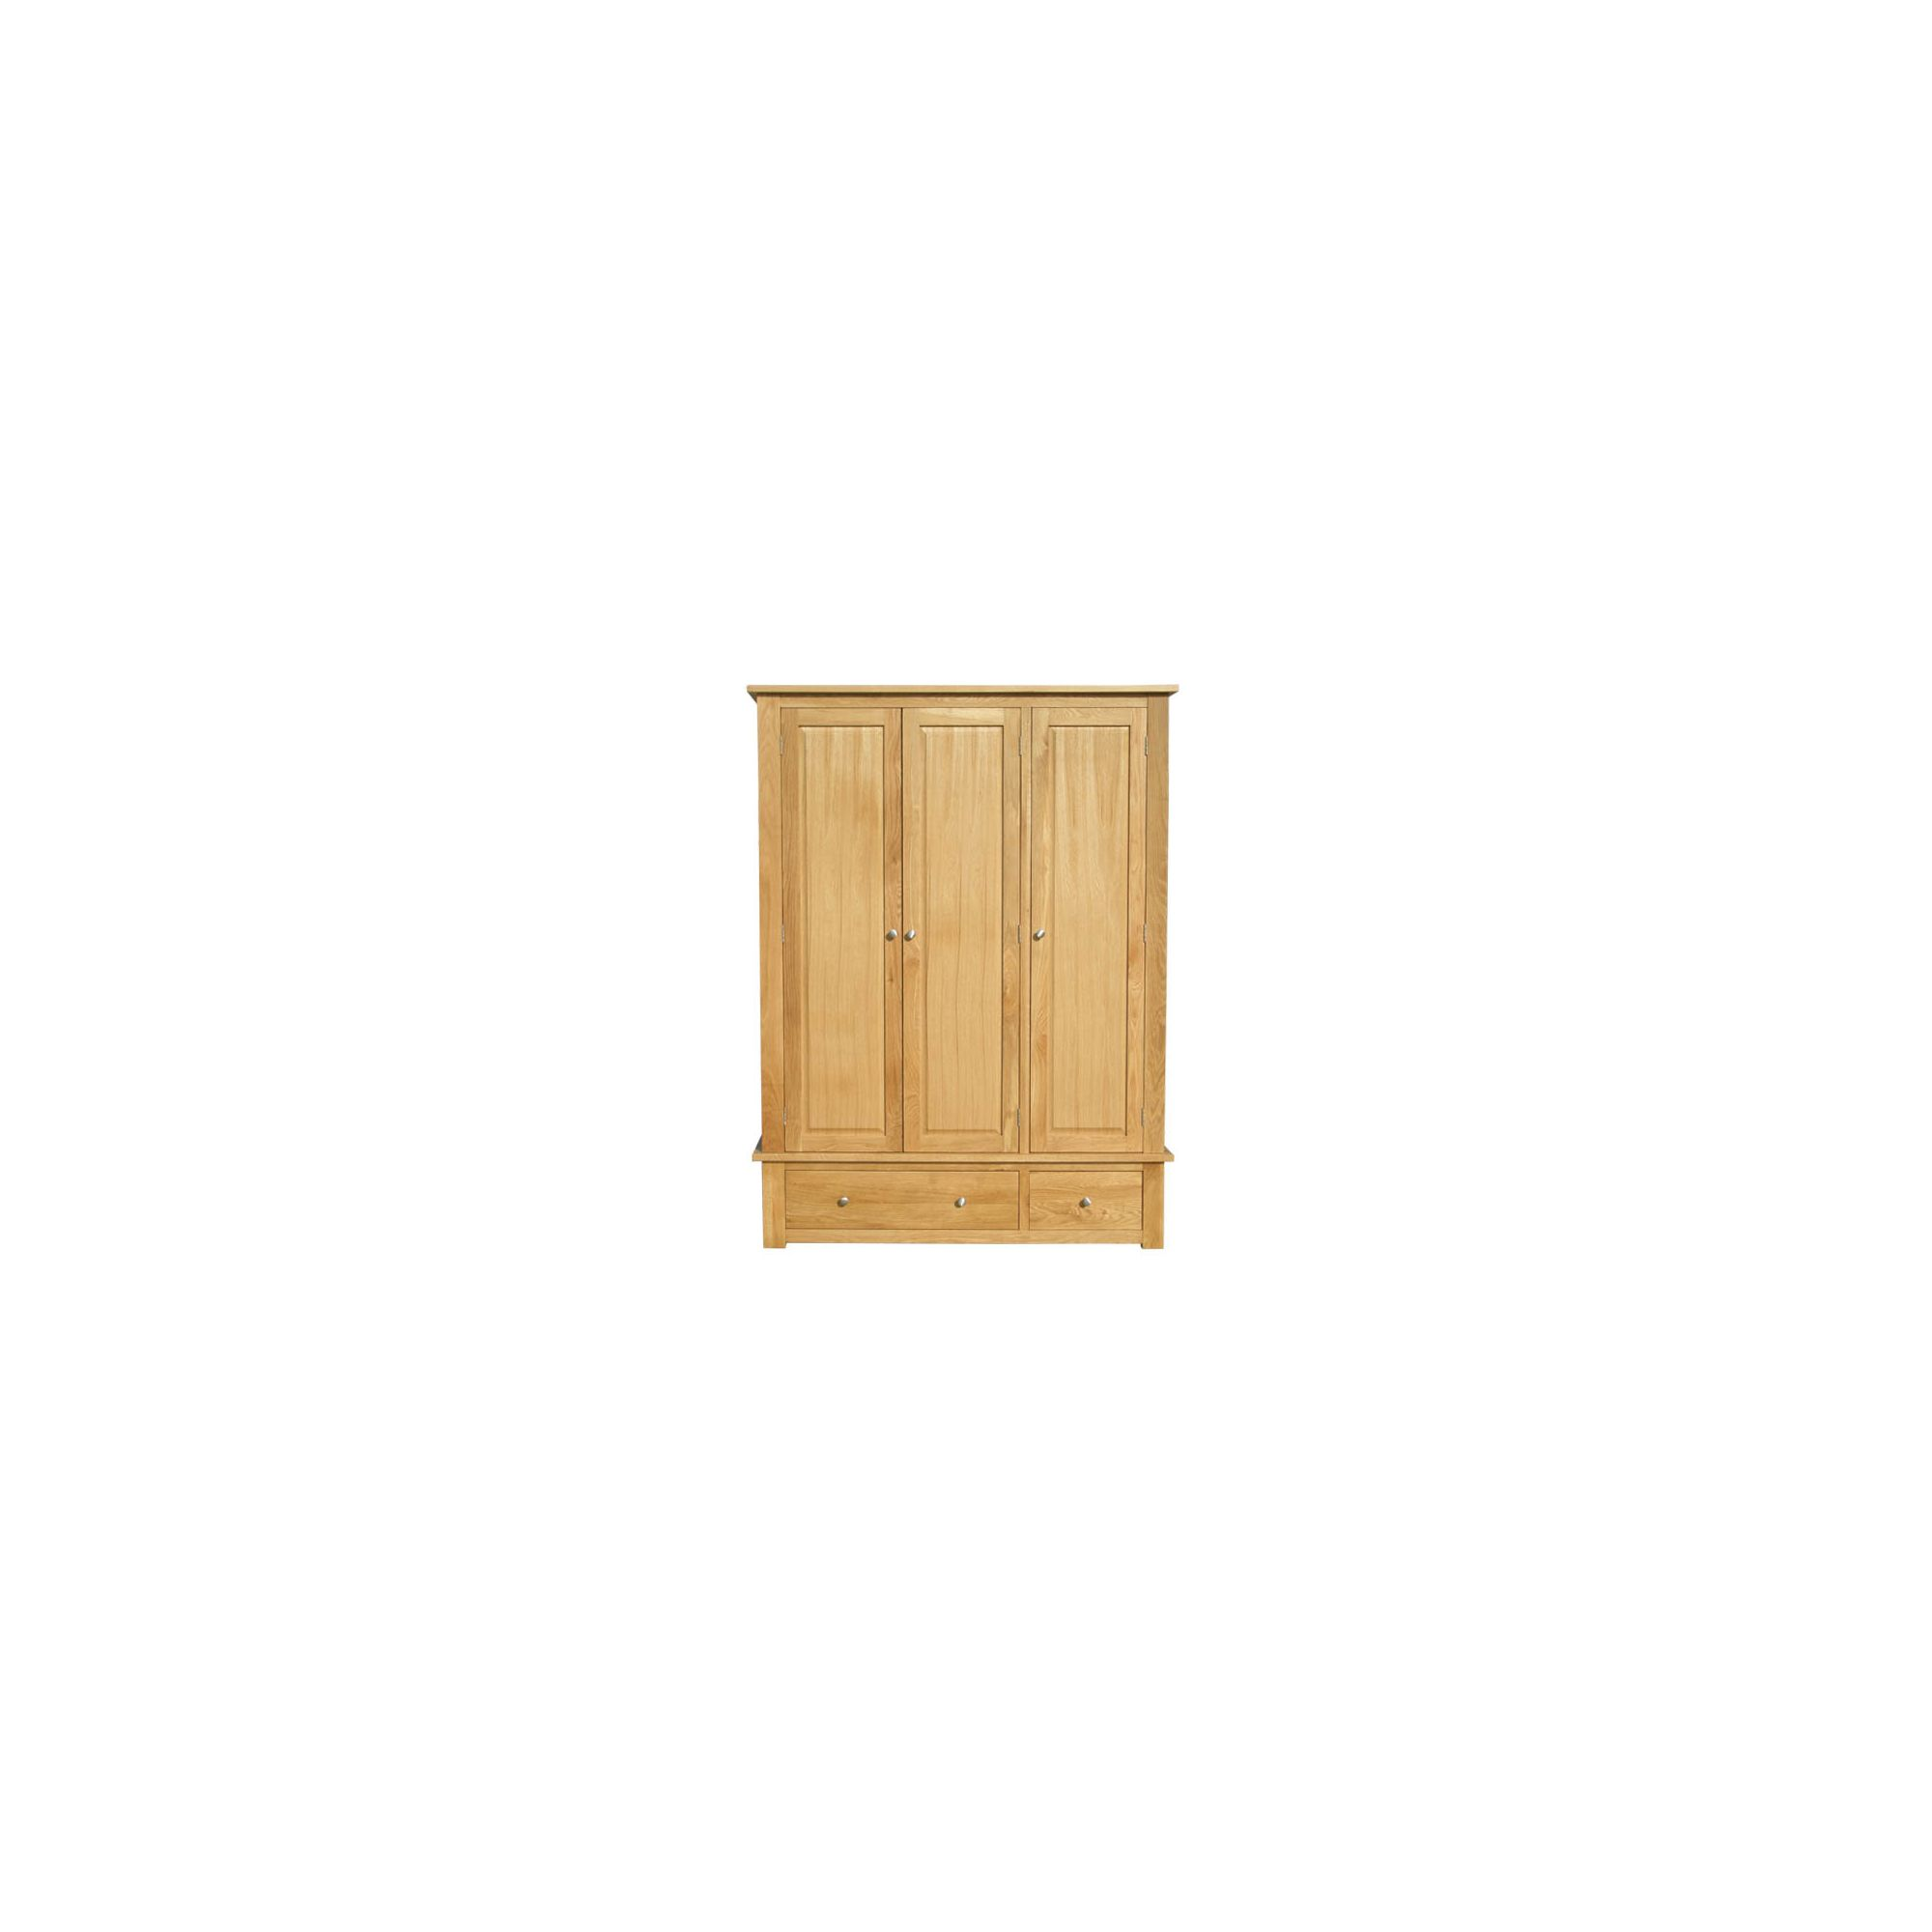 Home Zone Furniture Lincoln Oak 2009 Three Door Wardrobe at Tesco Direct